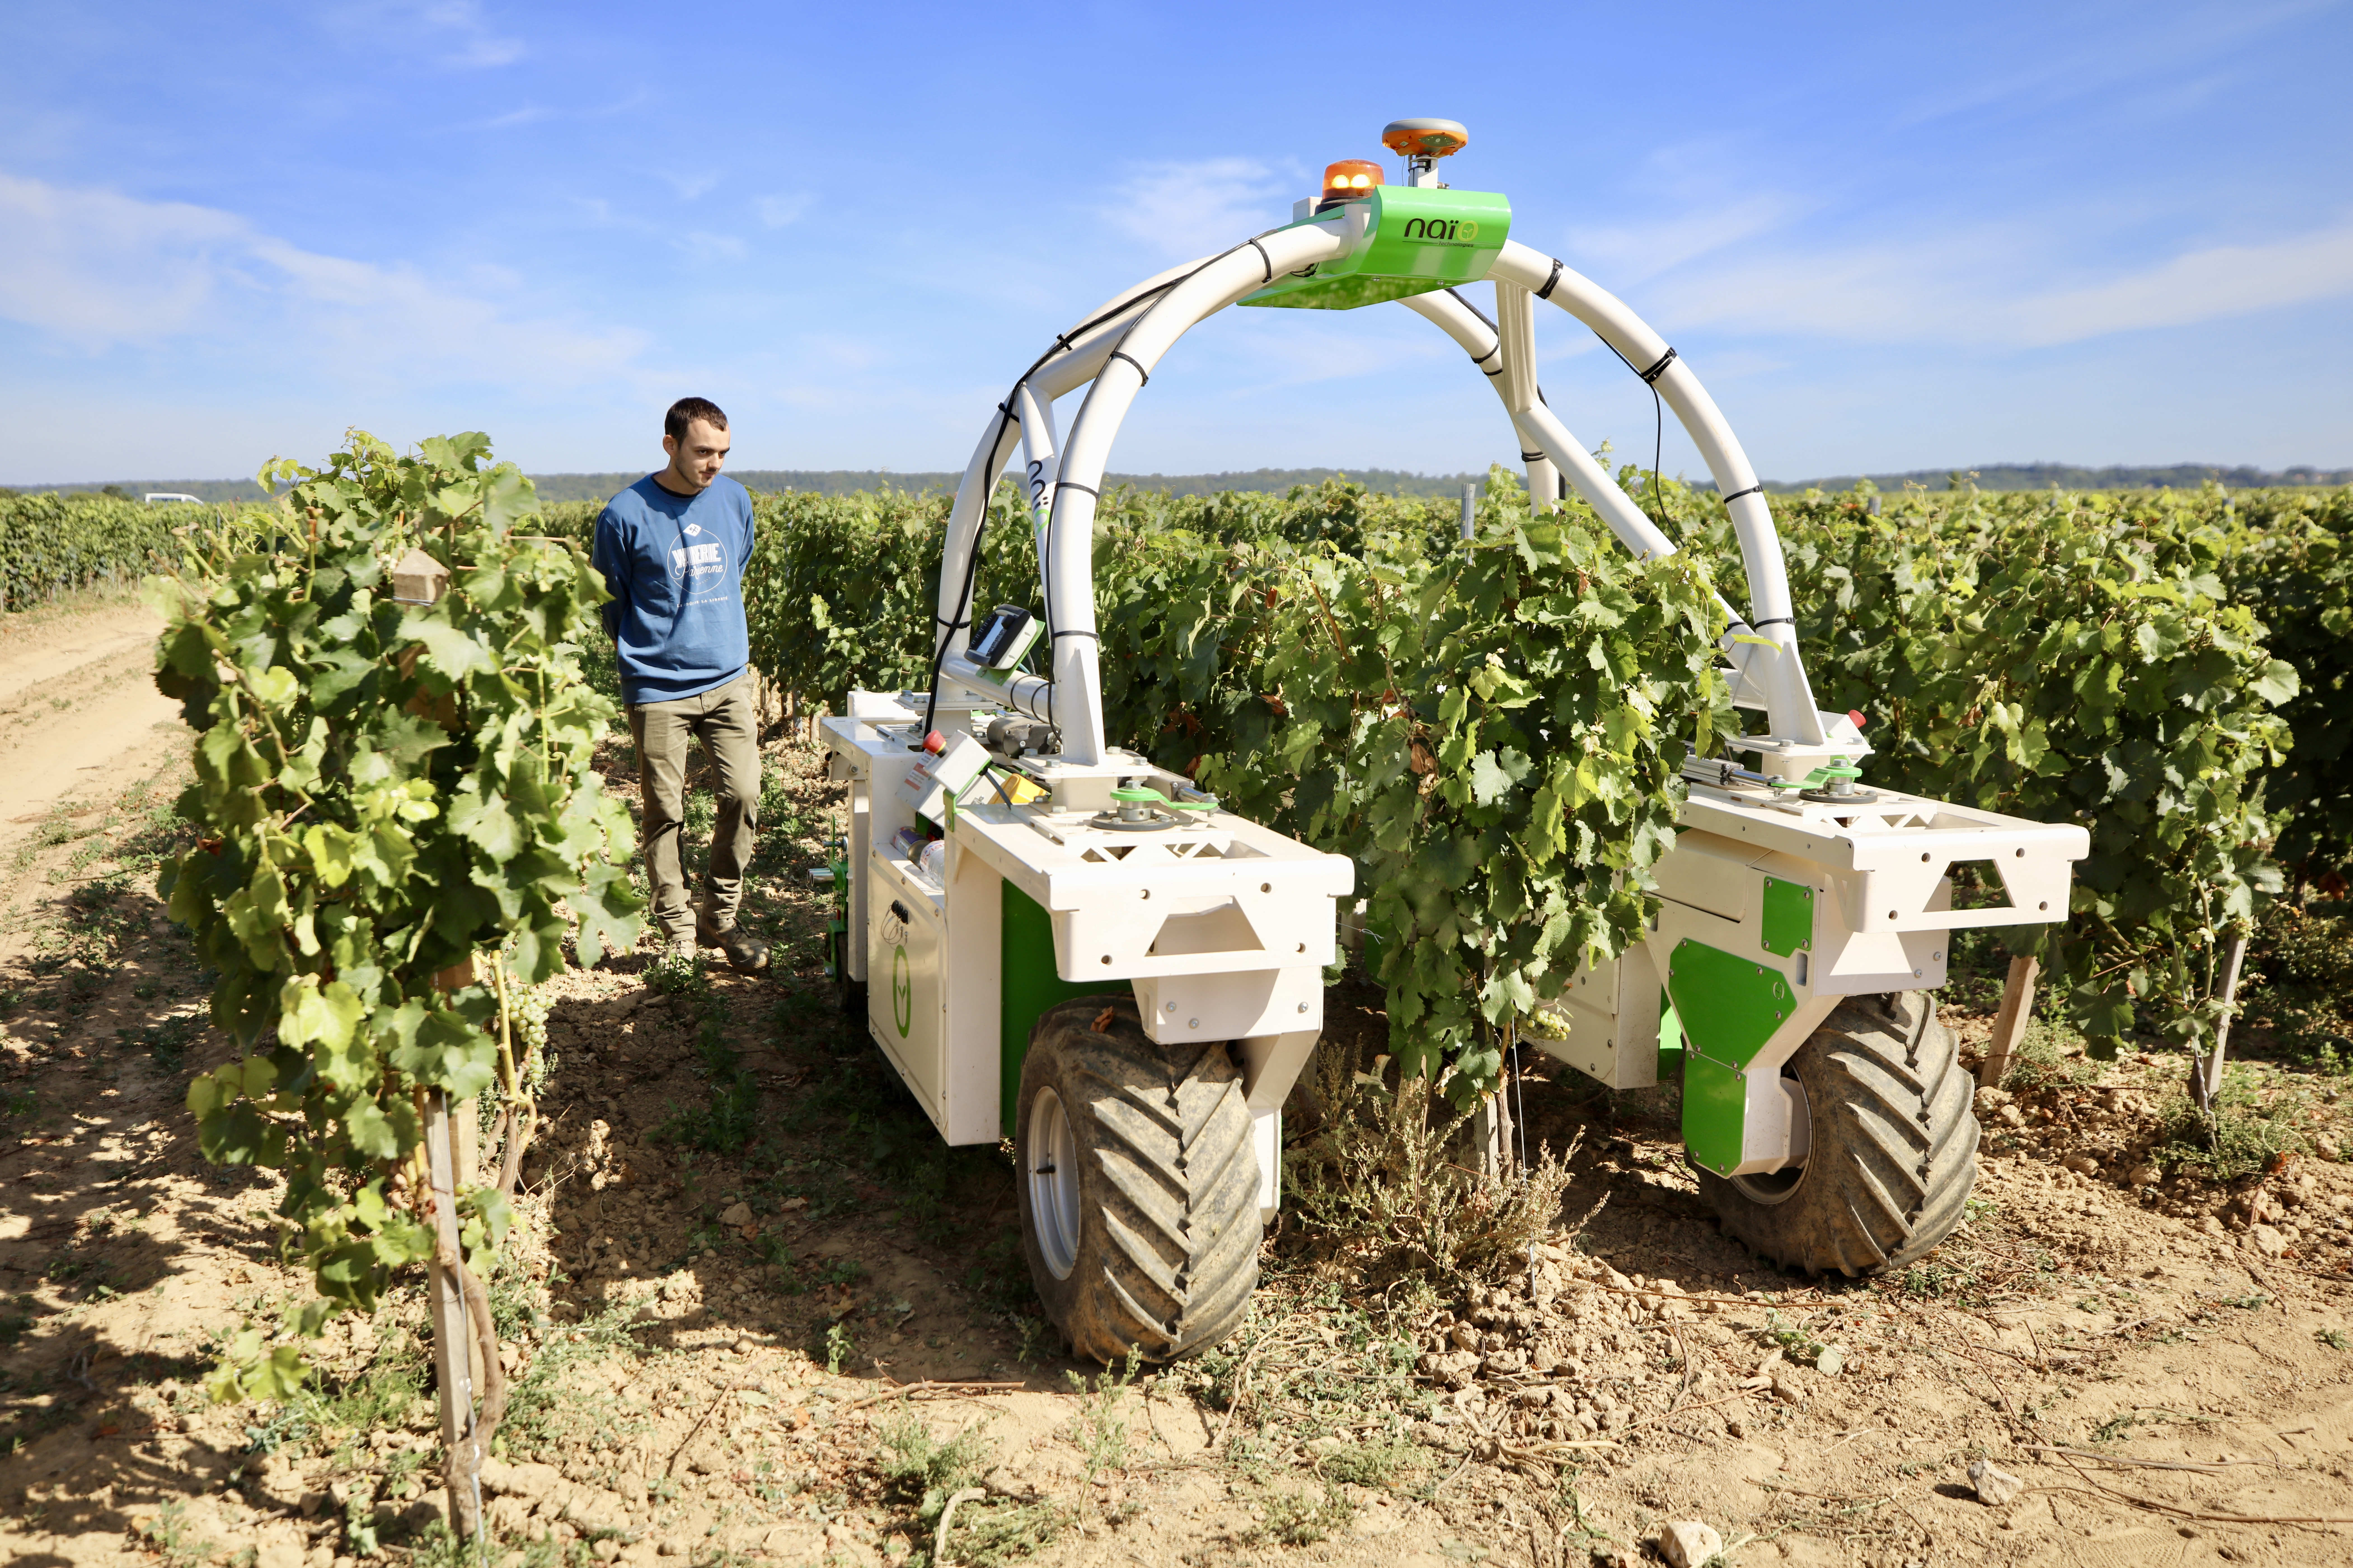 Naïo Technologies's Autonomous electric vineyards robot  (credits: Nicolas DUPREY / CD 78 / Flickr Creative Commons Attribution-NoDerivs 2.0 Generic (CC BY-ND 2.0))